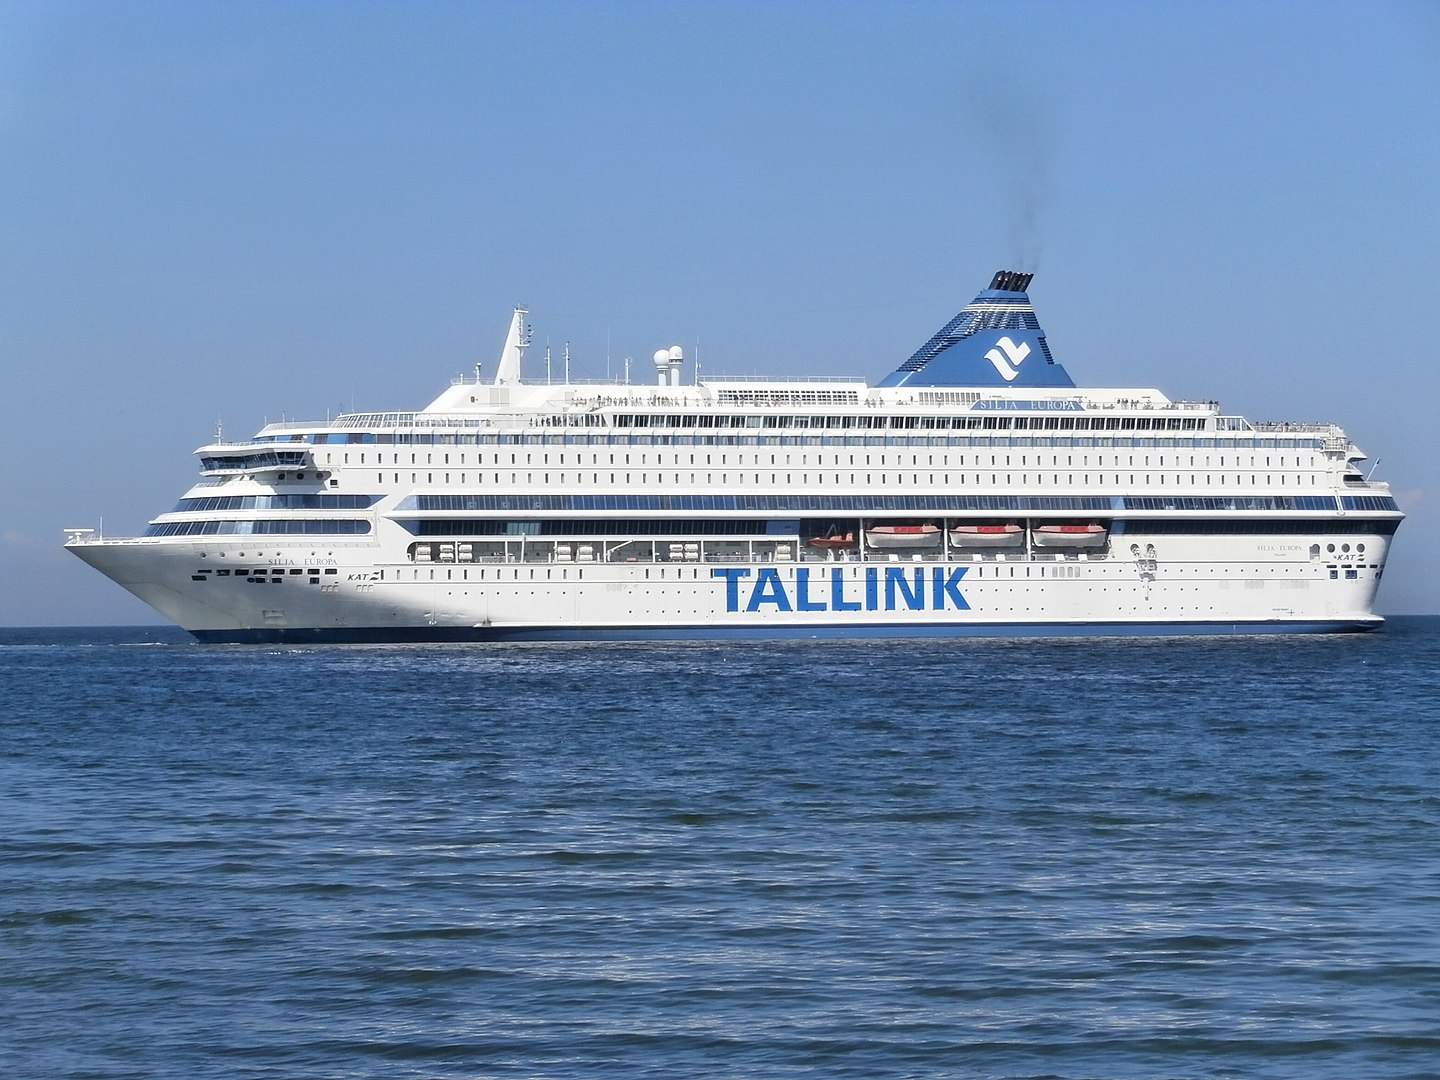 Tallink Silja Europa cruise ferry is able to accomodate 3,123 passengers. Photograph: Puclib domain